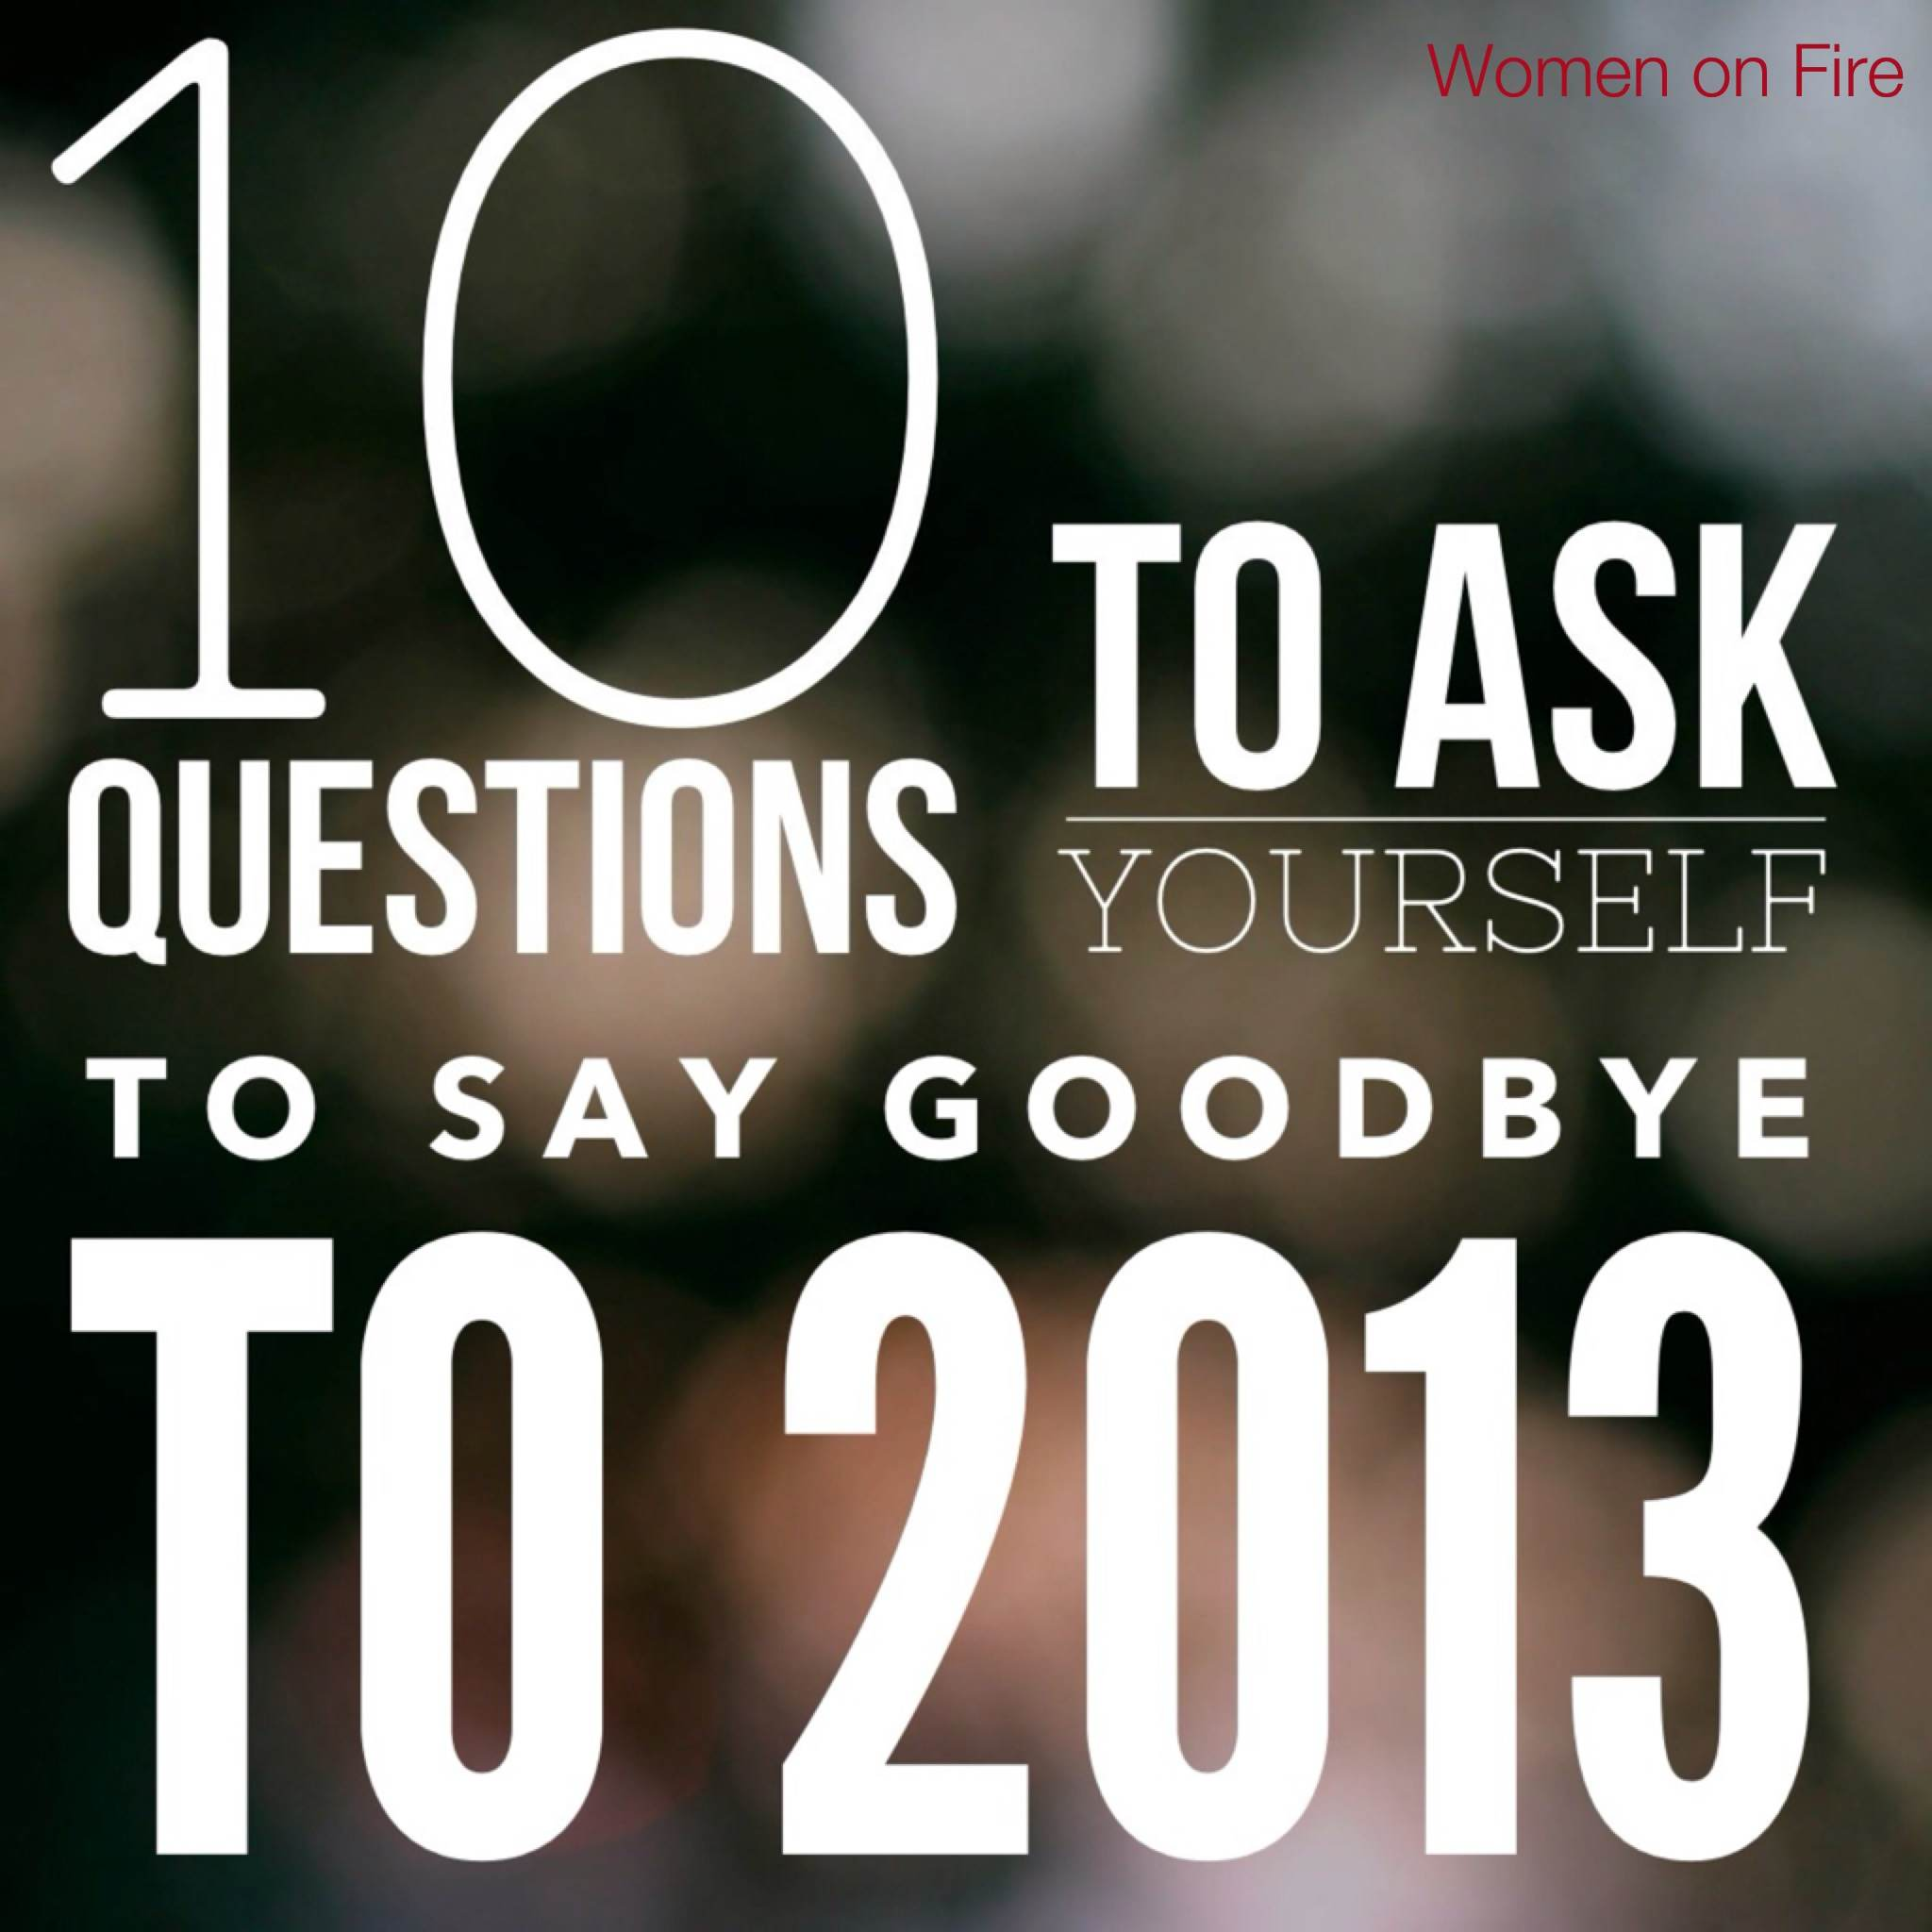 10 questions to ask yourself to say goodbye to 2013 and start next year fresh- womenonfire